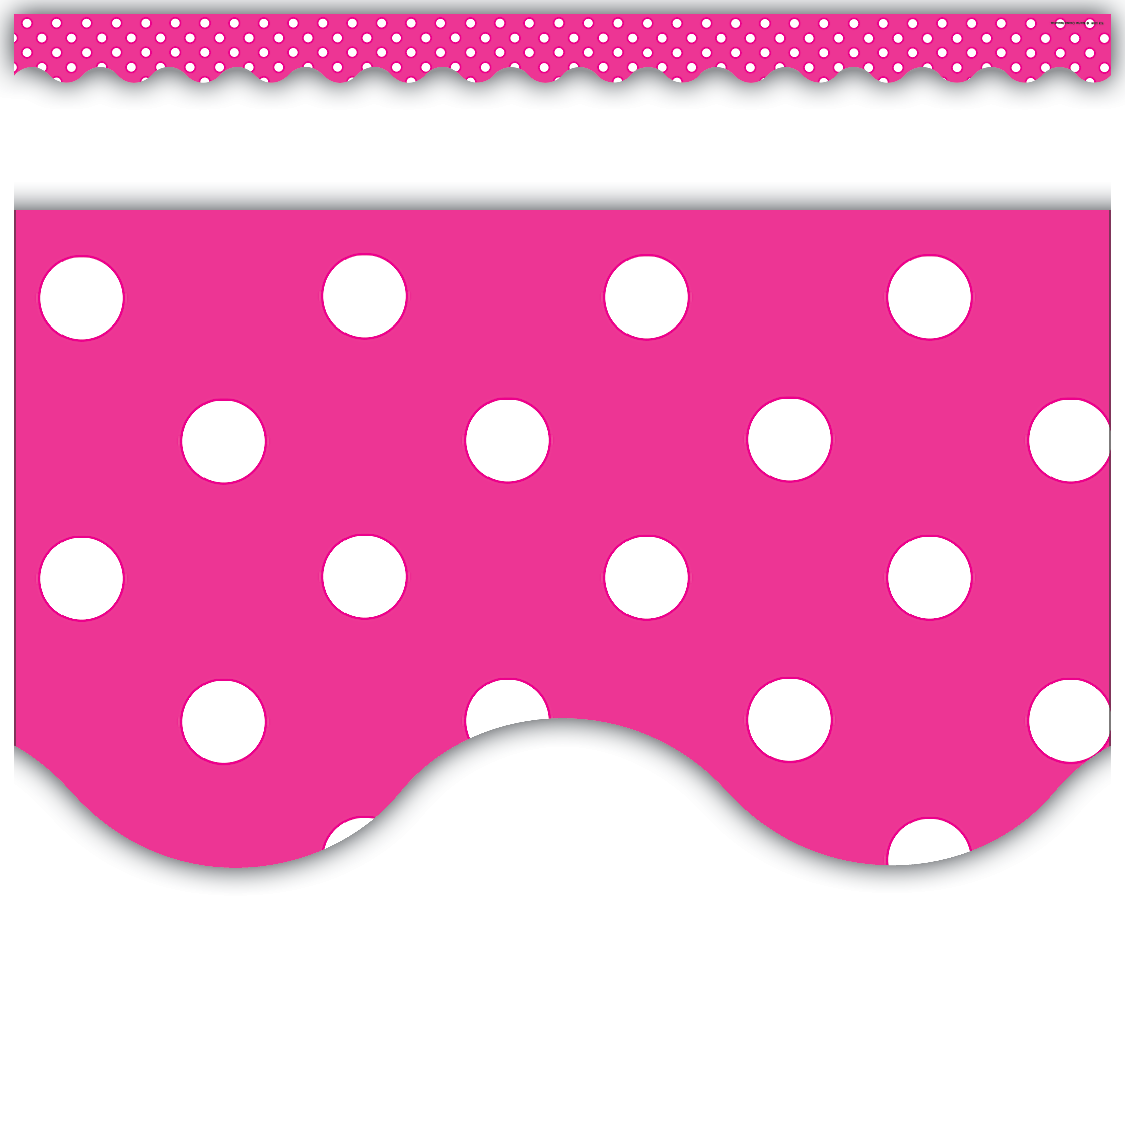 Hot Pink Polka Dots Scalloped Border Trim